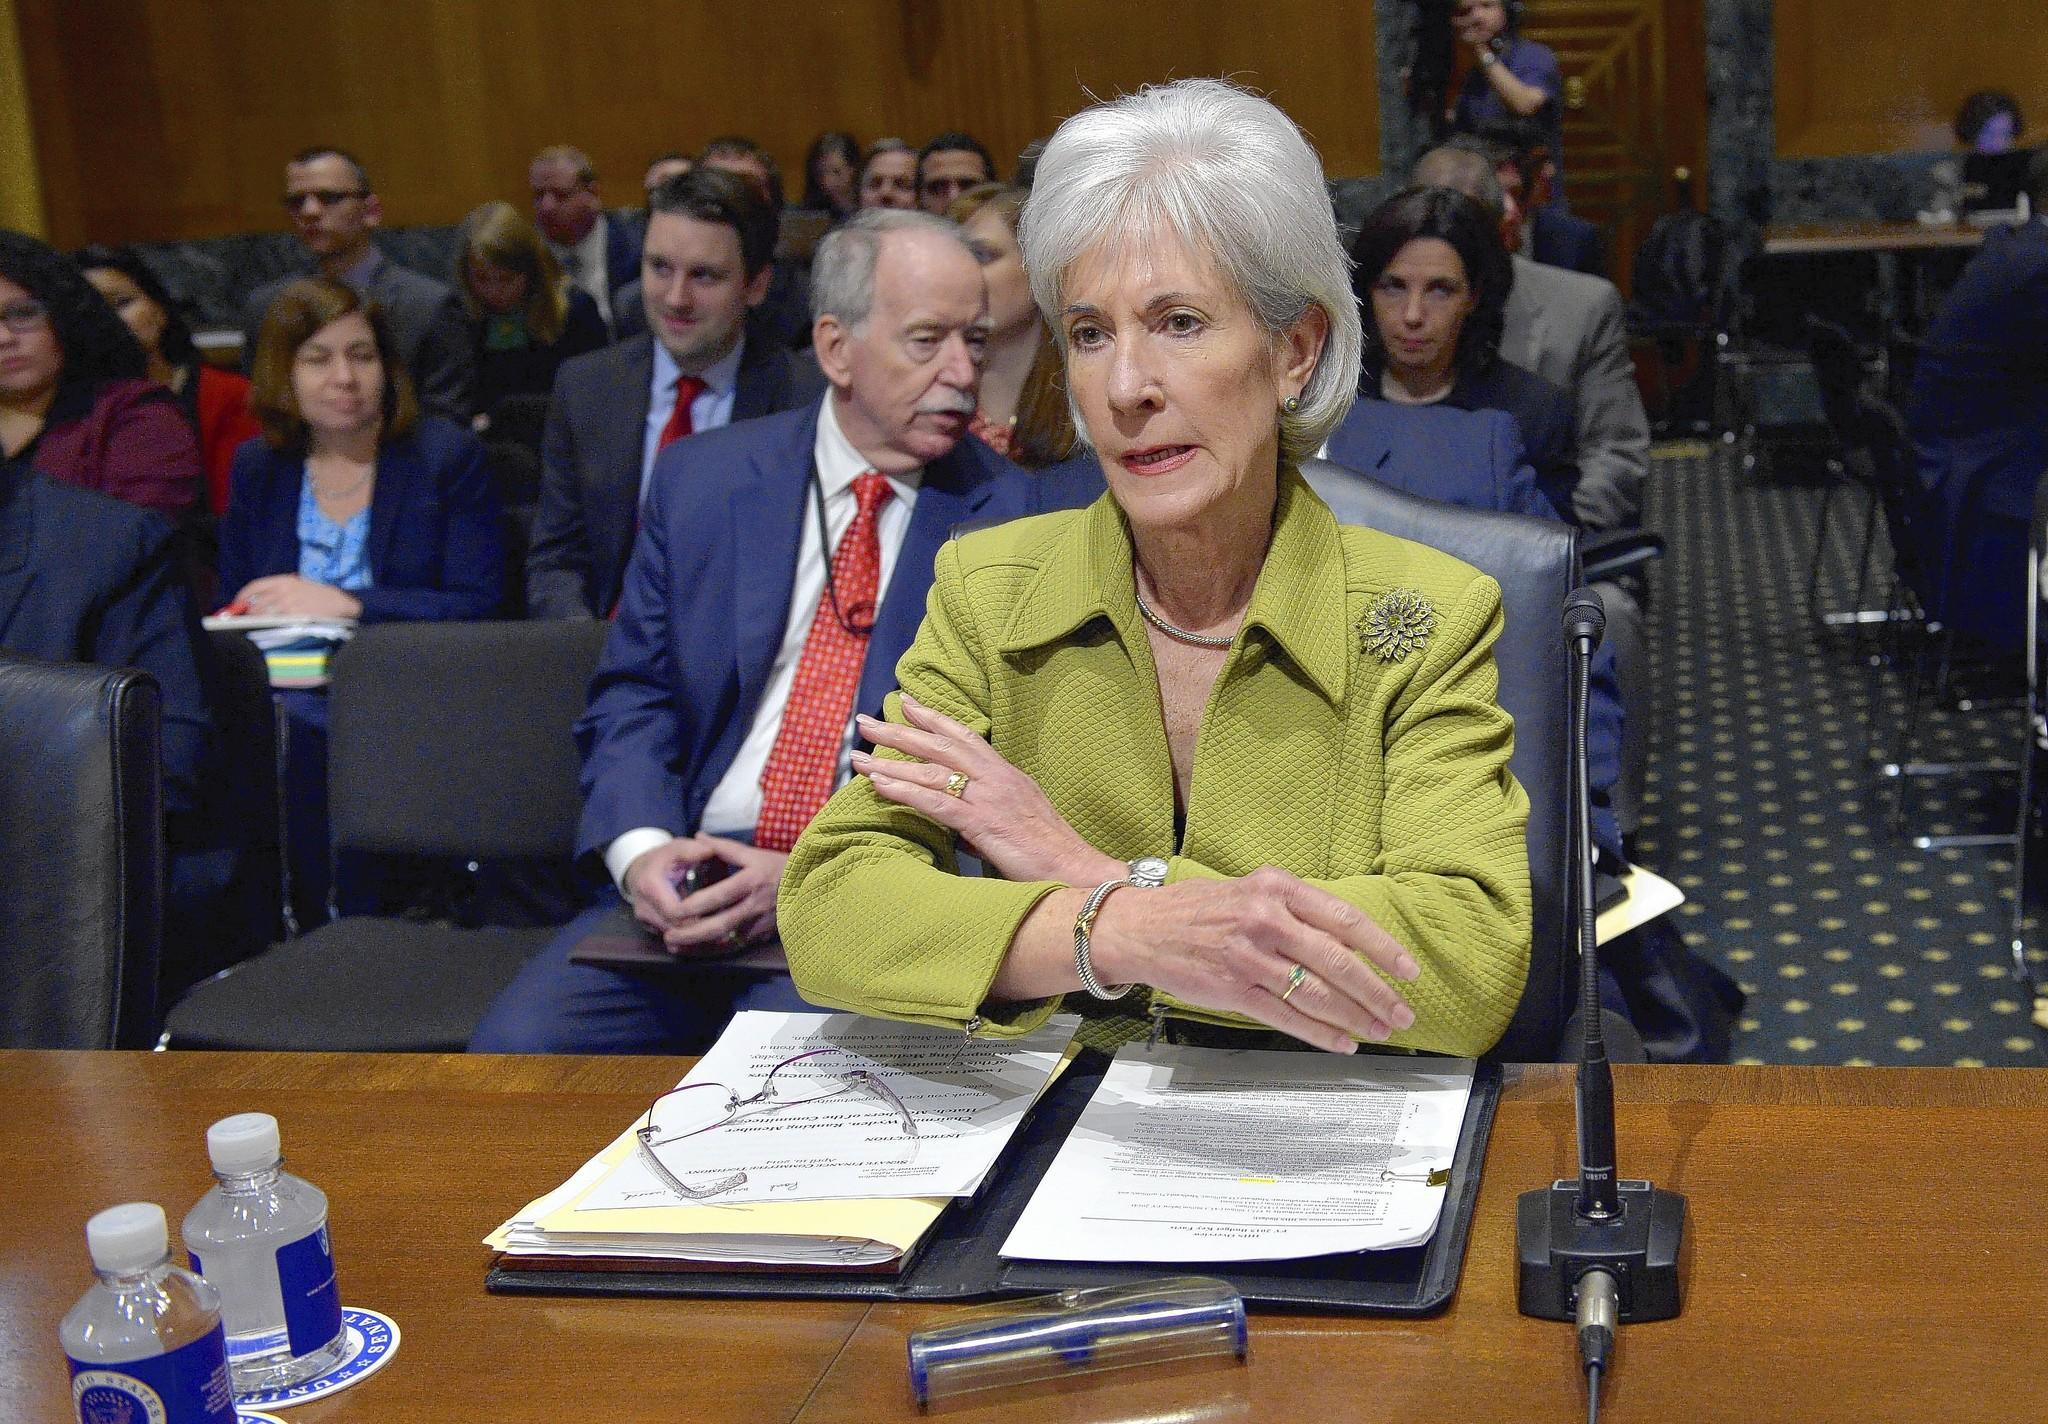 Health and Human Services Secretary Kathleen Sebelius is resigning after more than five years.